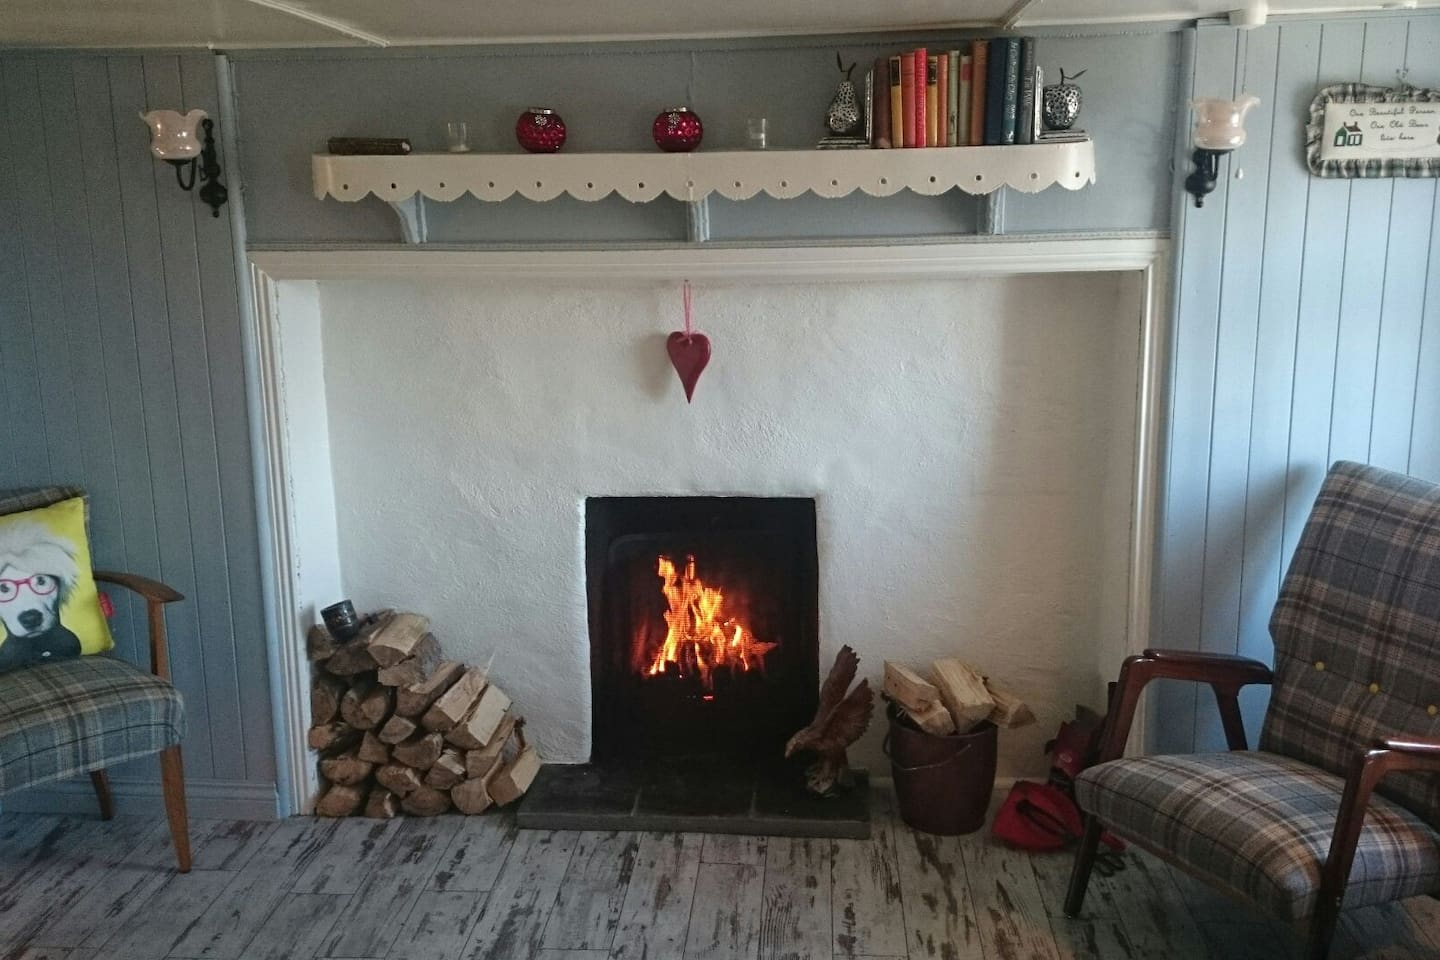 The original fireplace in the main room with a roaring fire and 2 vintage chairs to sit on either side of the fire.